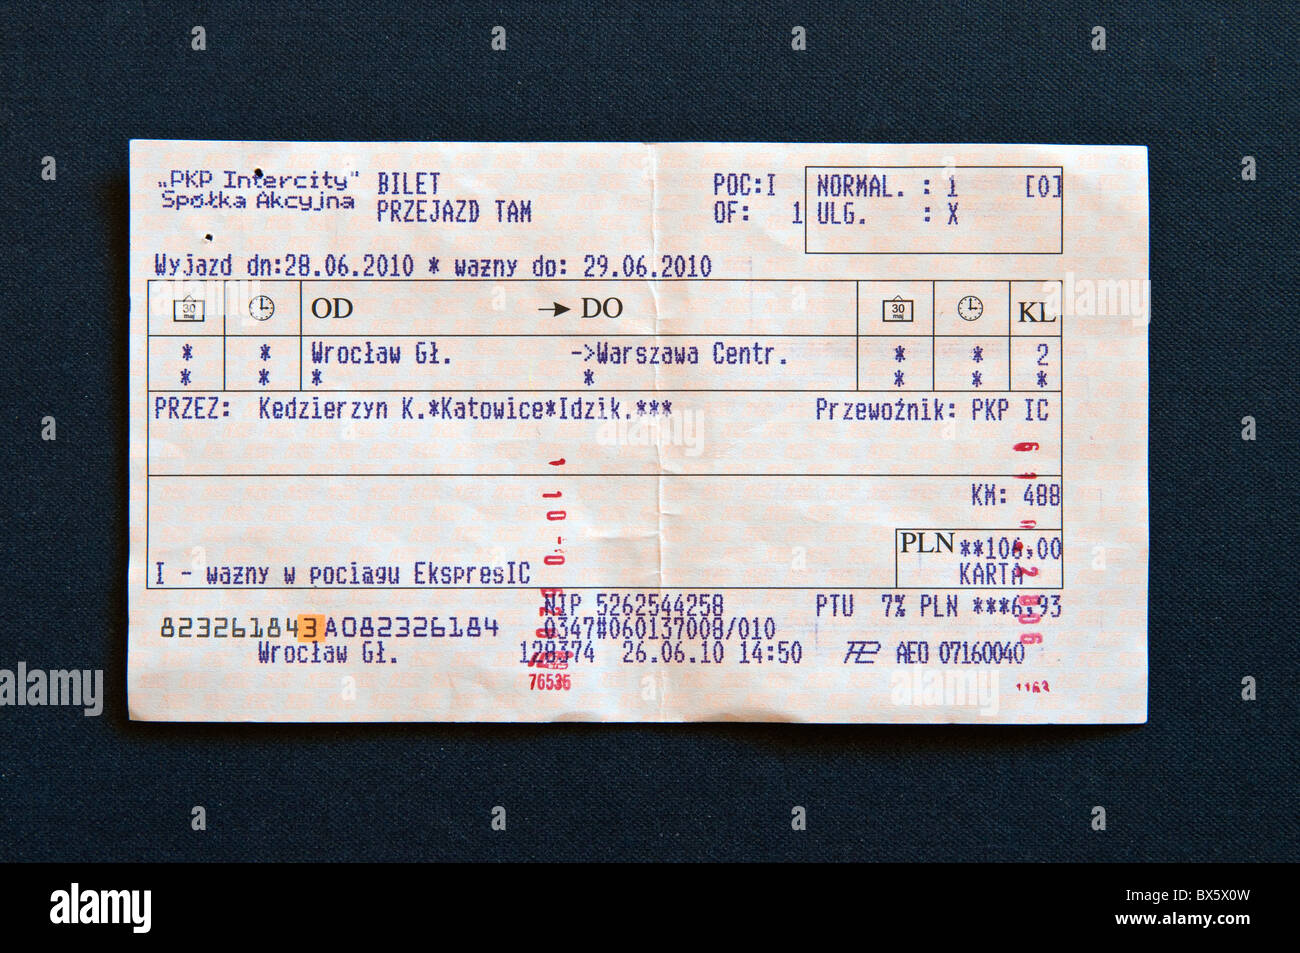 Validated train ticket for express train from Wroclaw to Warsaw, Poland Stock Photo